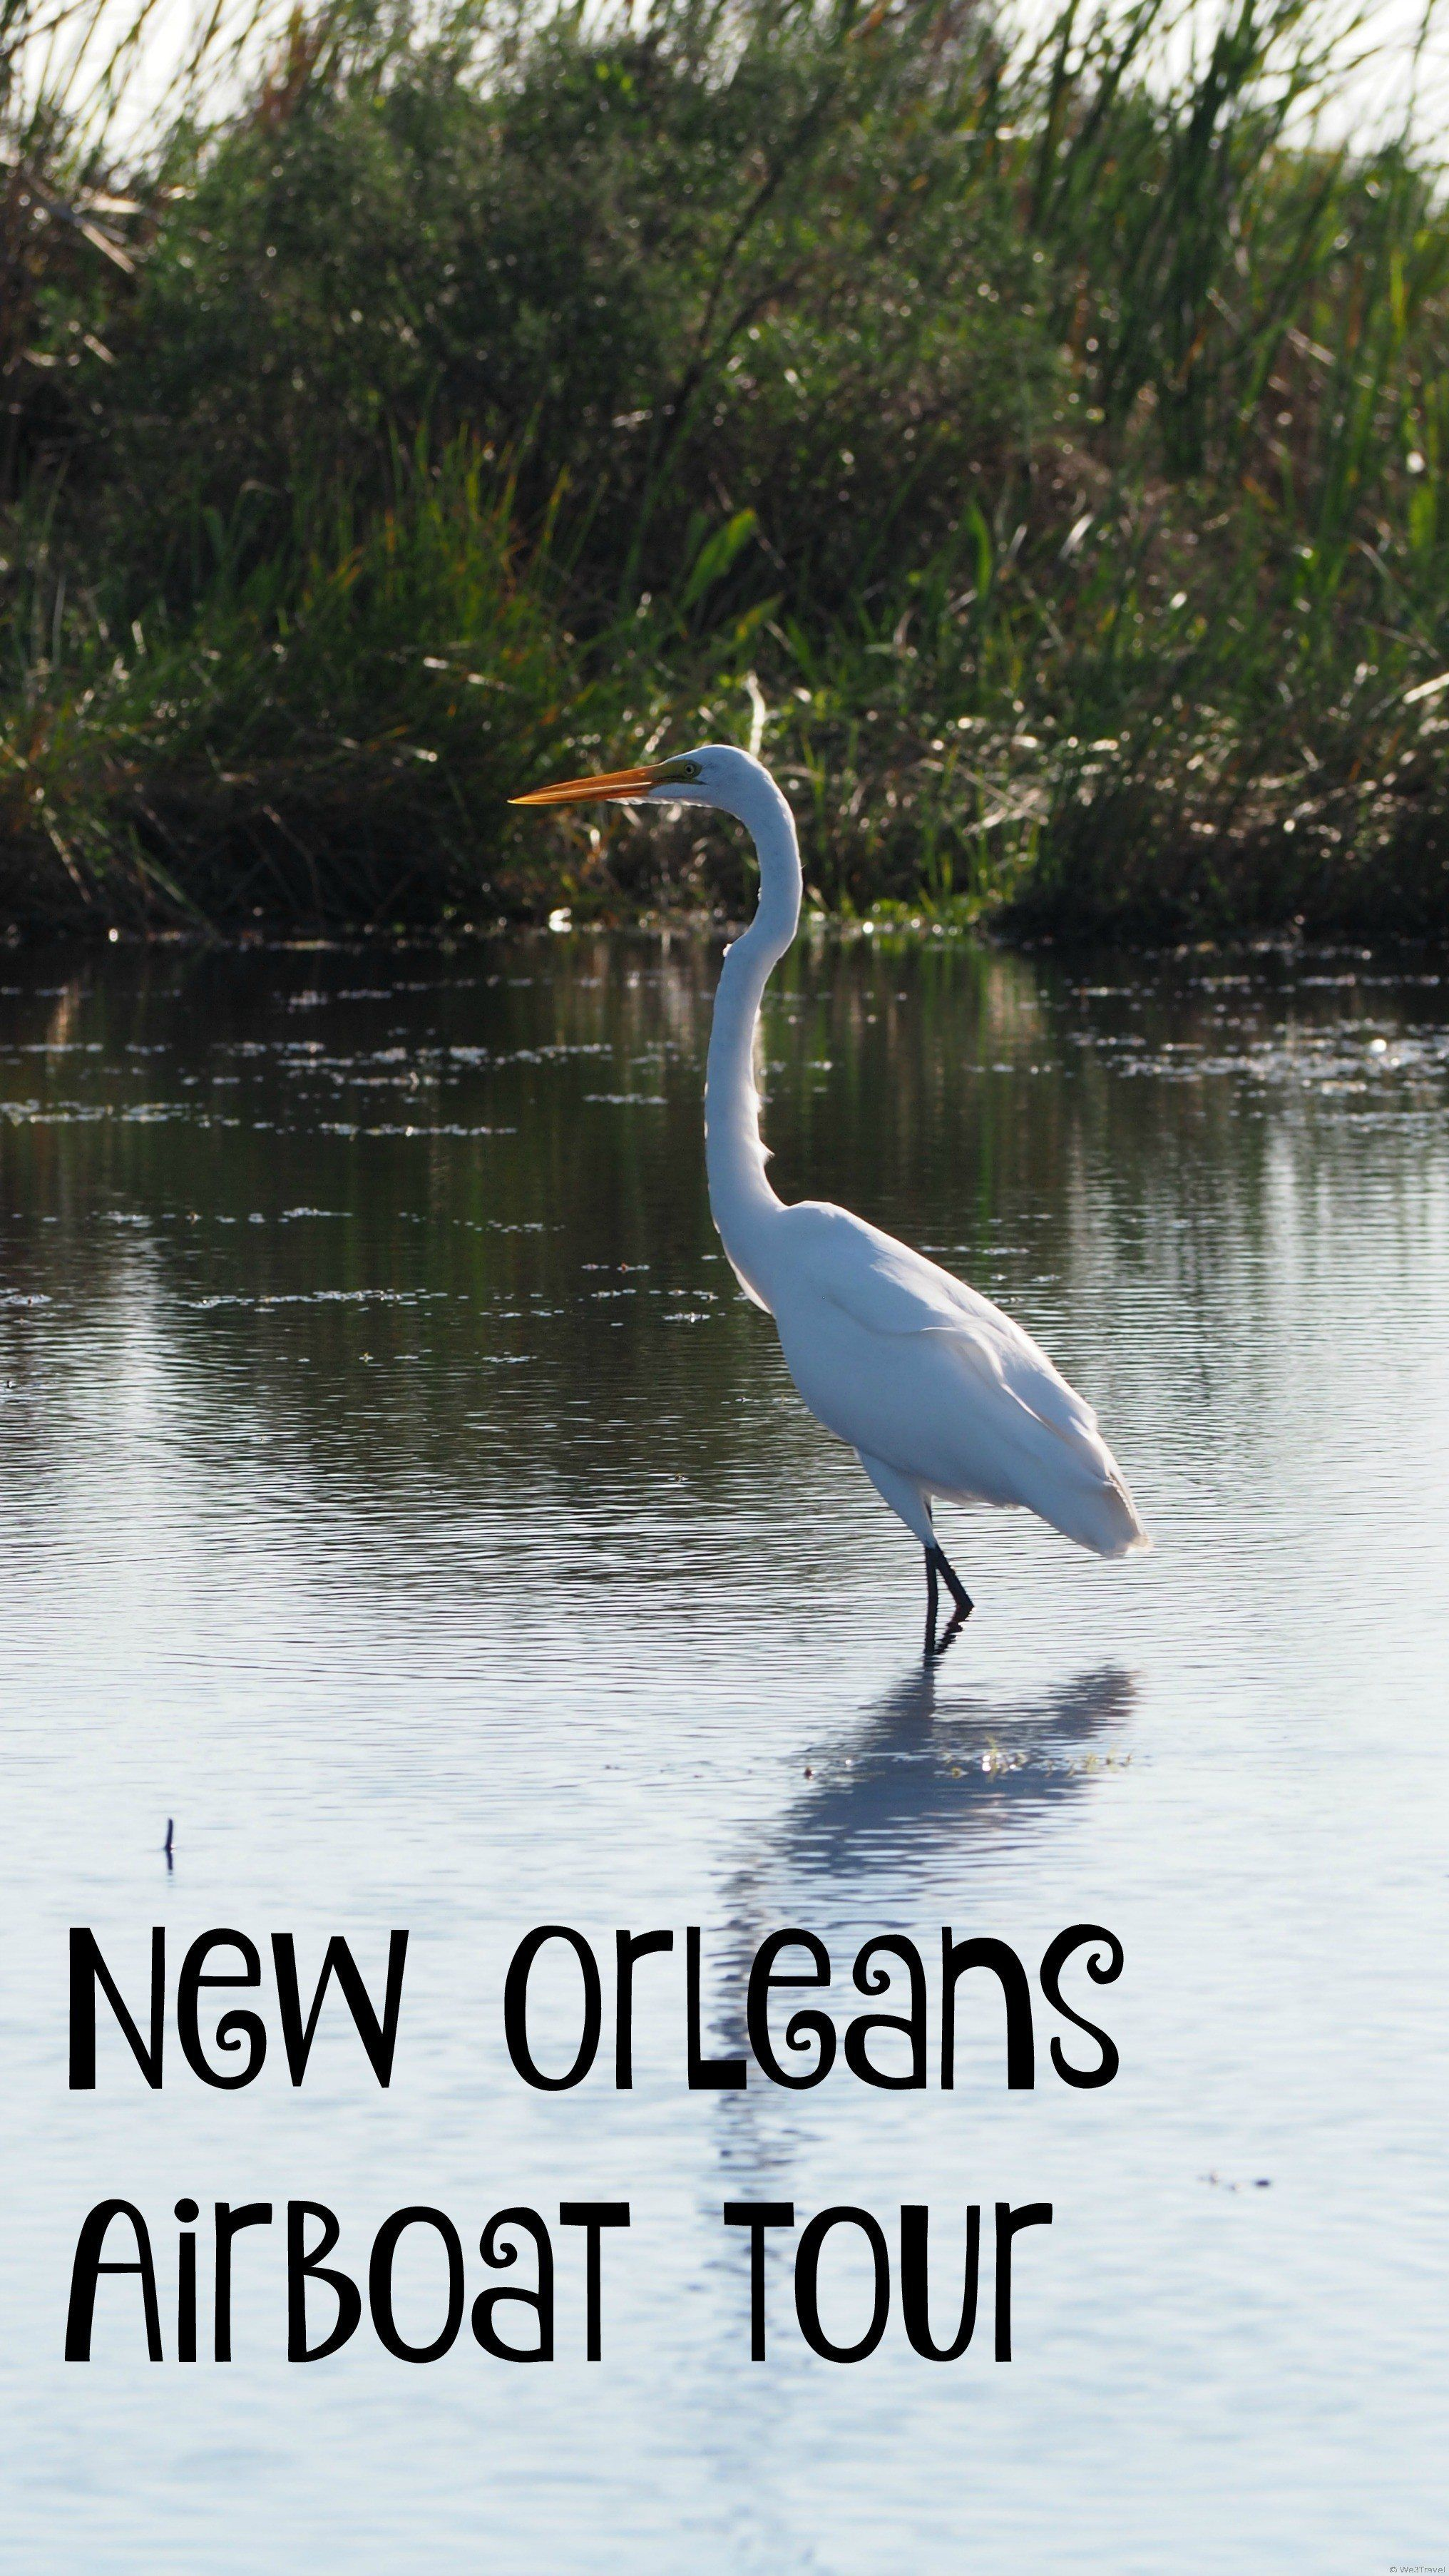 Louisiana Oysters and Airboat Tours New Orleans Style